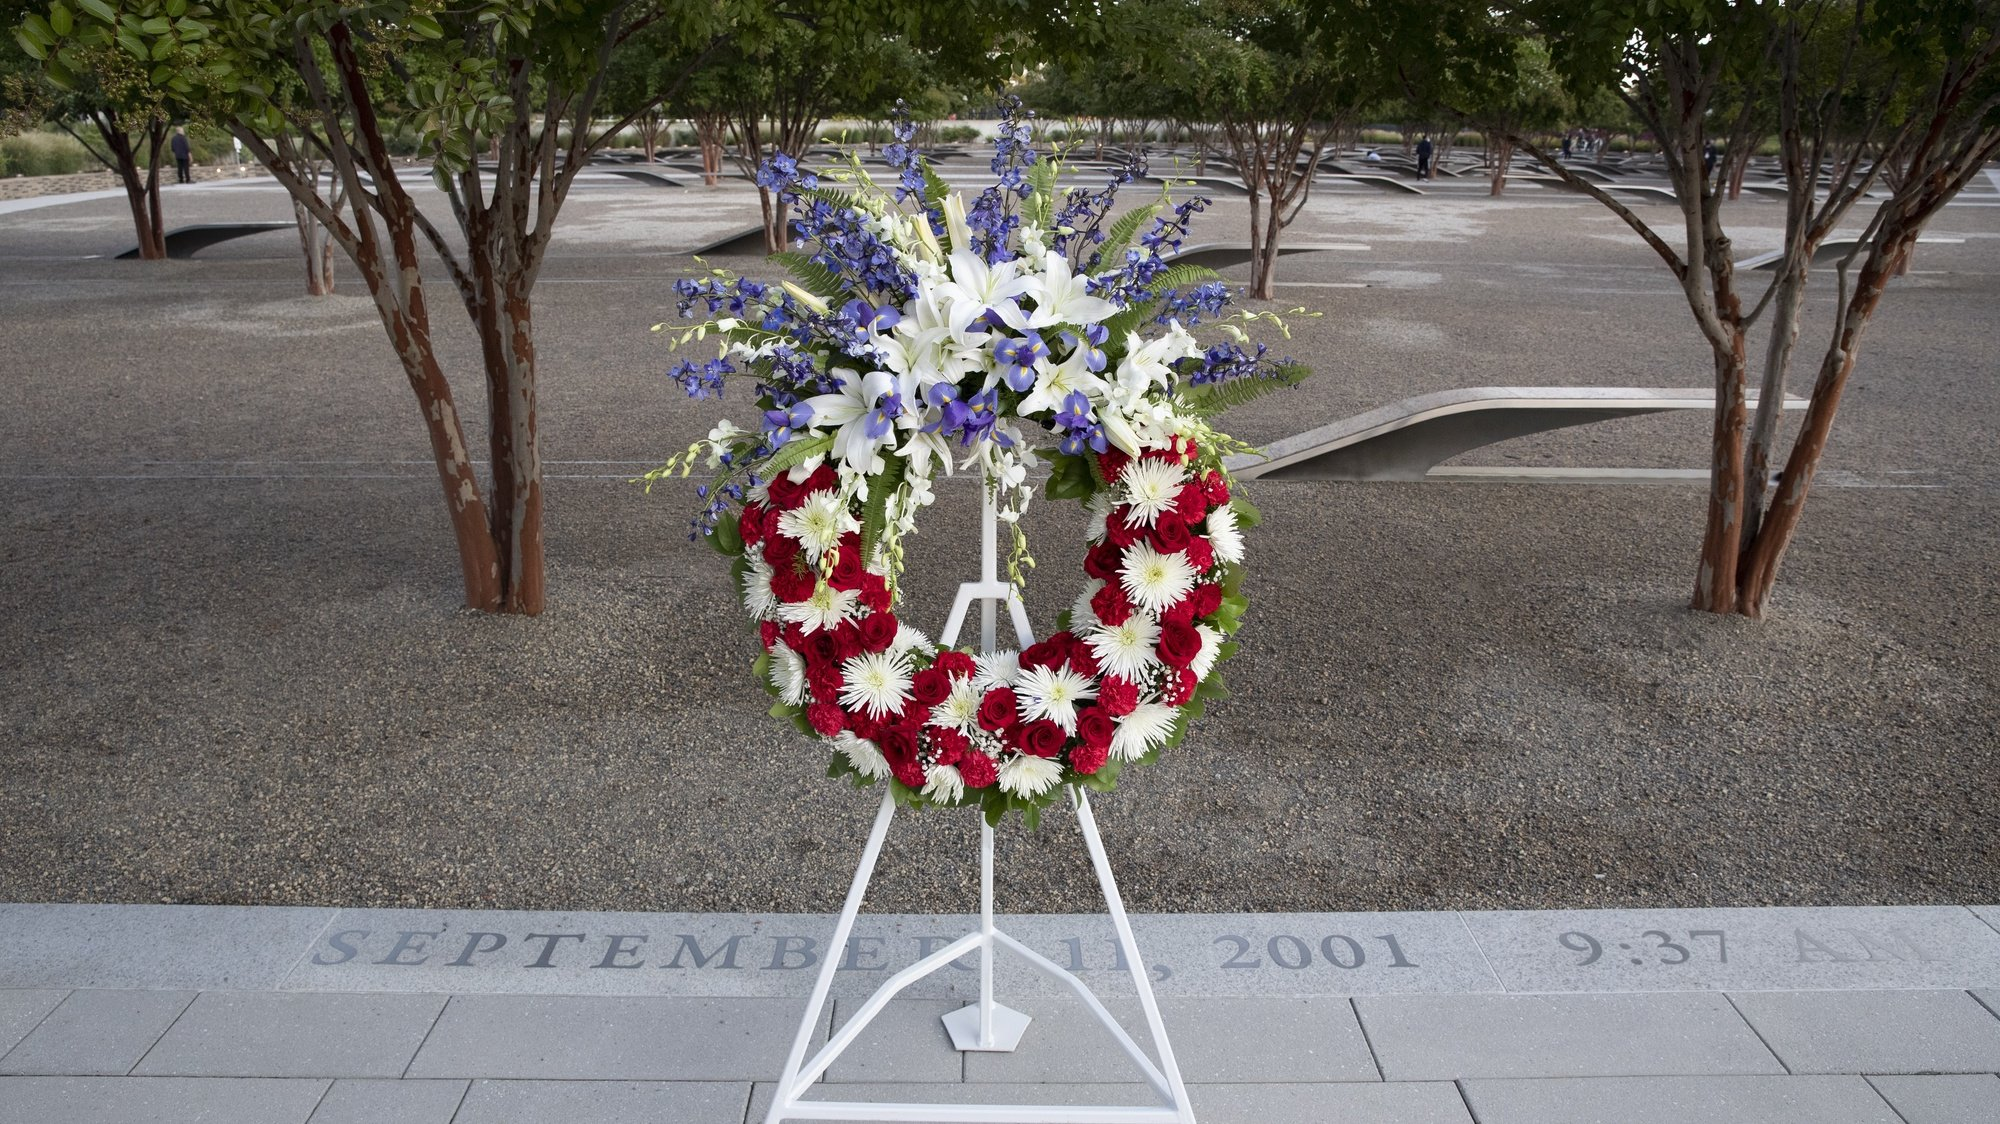 epa09460936 A wreath is placed at the National 9/11 Pentagon Memorial, before an observance ceremony for the 20th anniversary of the 9/11 attacks, at the Pentagon in Arlington, Virginia, USA, 11 September 2021. The 20th anniversary of the worst terrorist attack on US soil is being observed at various locations throughout the world.  EPA/MICHAEL REYNOLDS